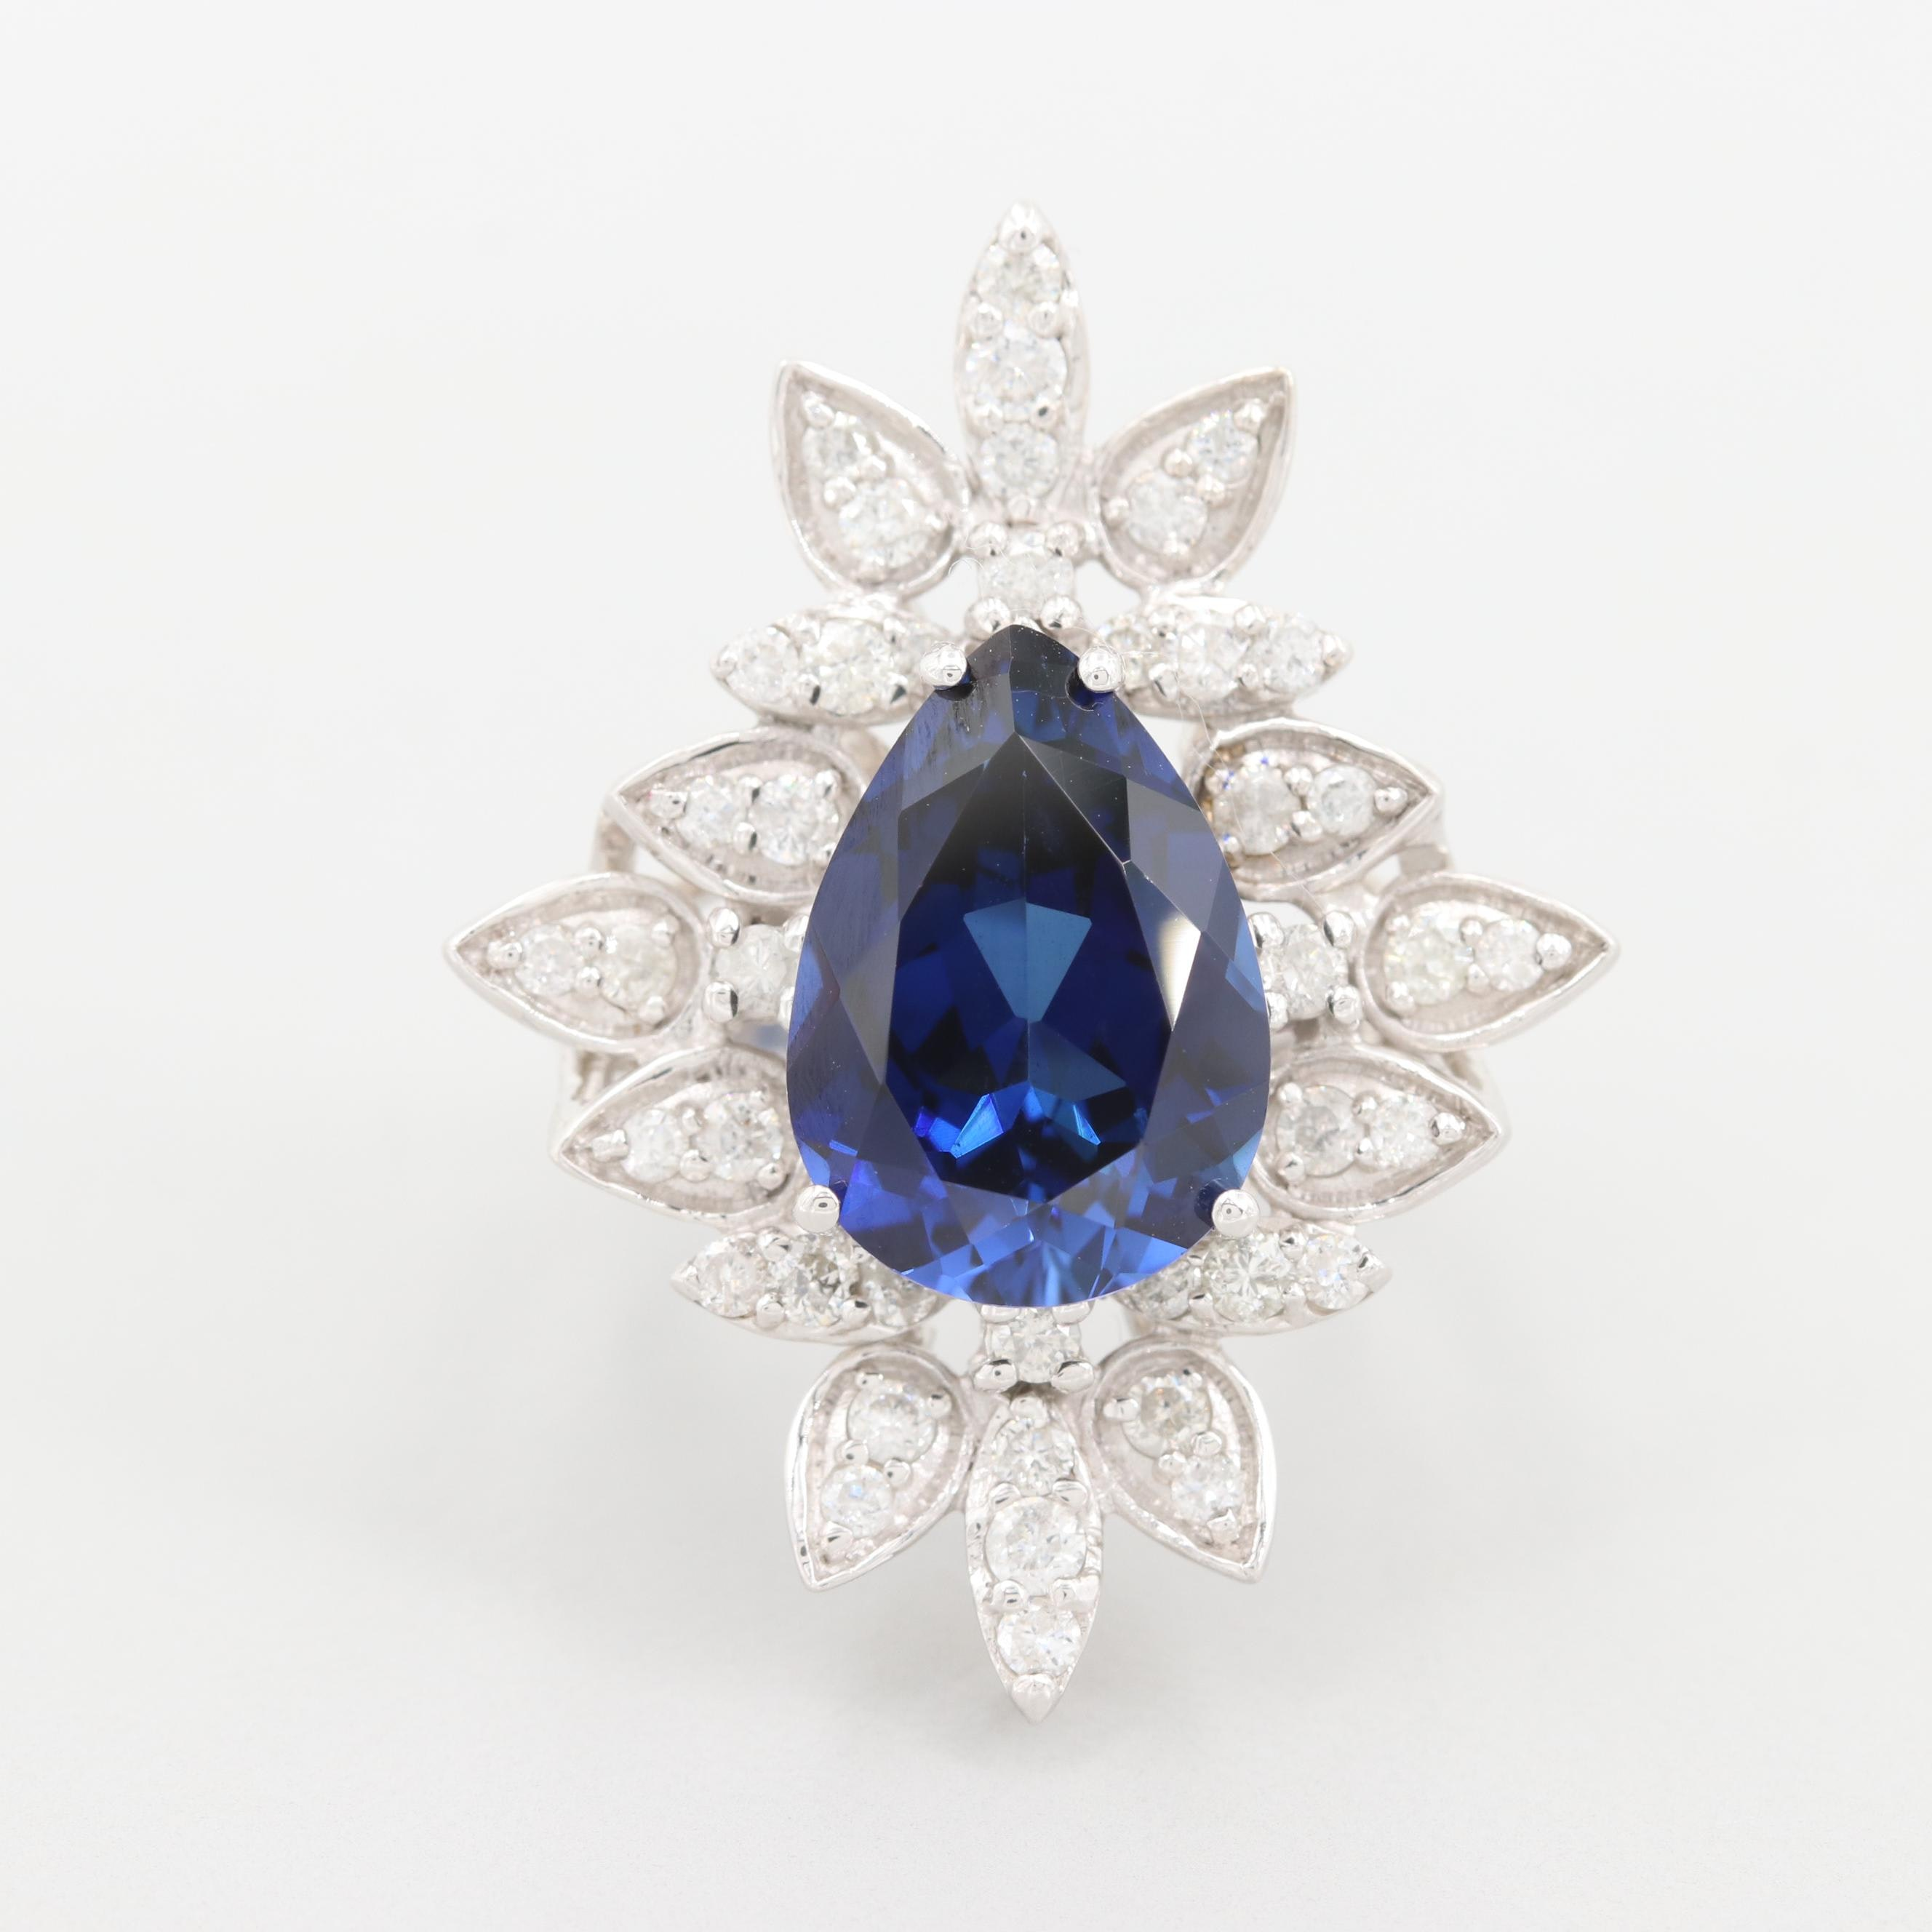 18K White Gold Synthetic Sapphire and Diamond Ring